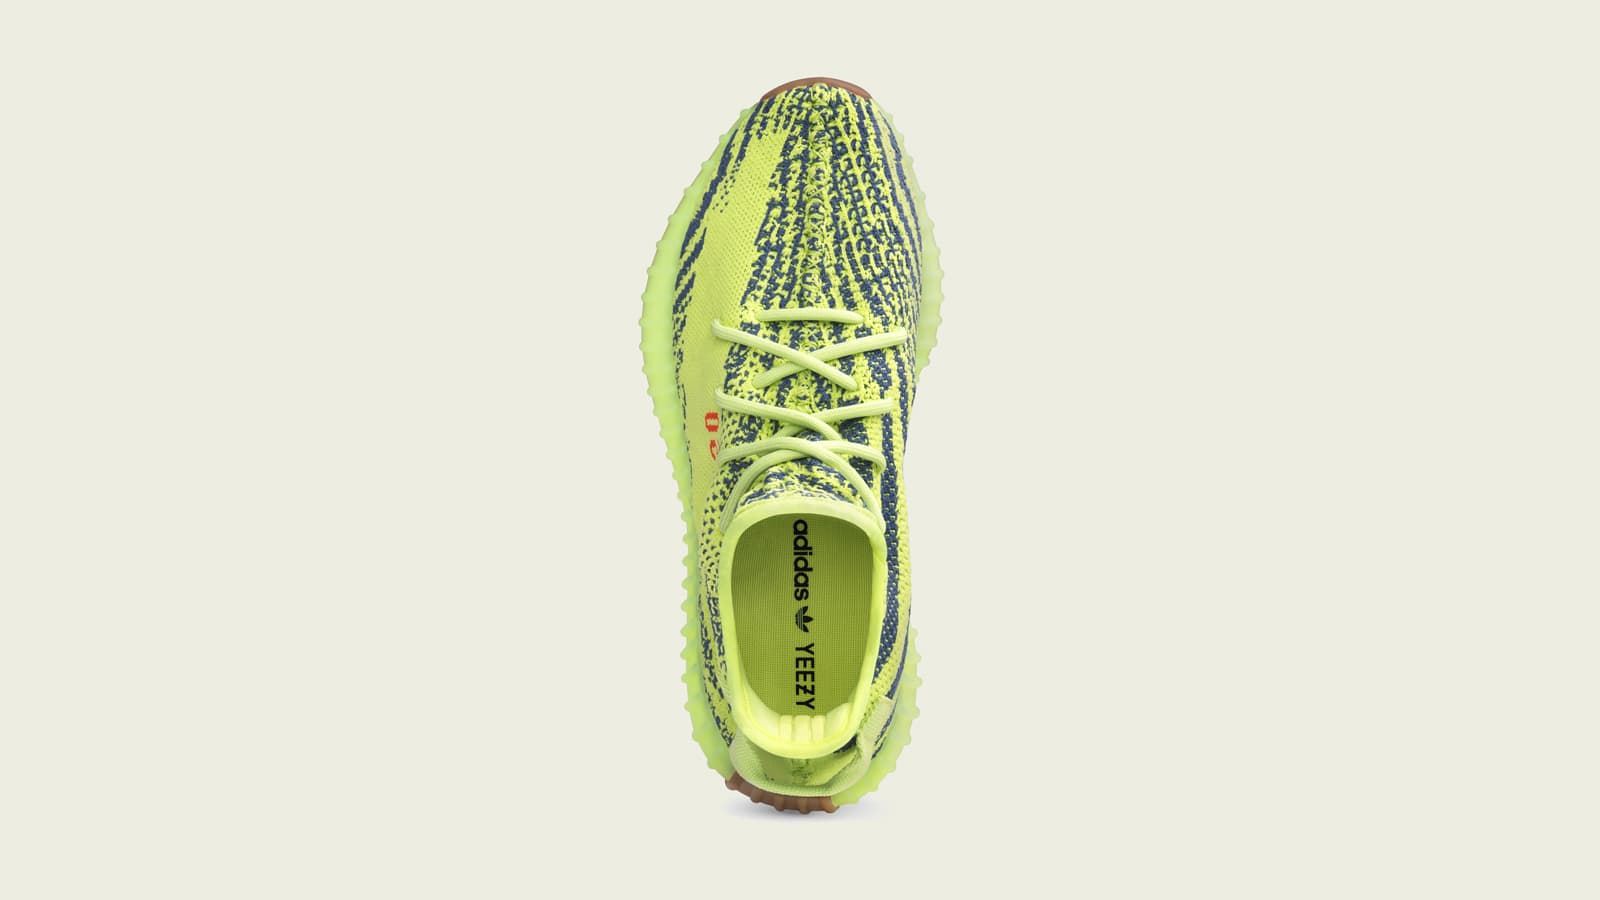 END. Features Yeezy Boost 350 V2 'Semi Frozen Yellow  Yeezy Boost 350 V2 'Semi Frozen Yellow